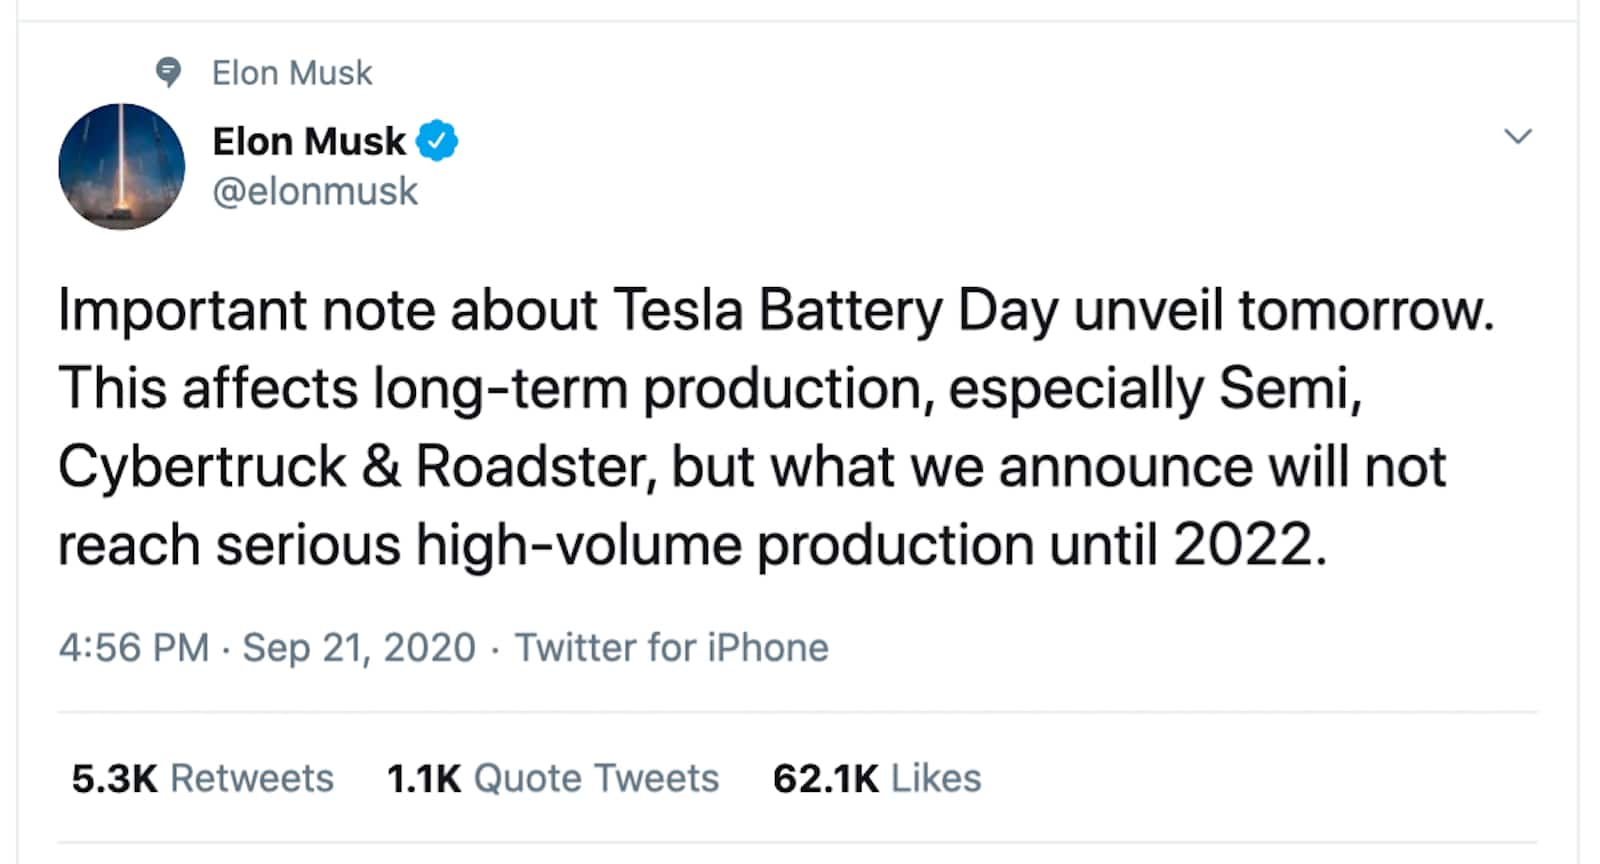 Where To Watch Tesla Battery Day